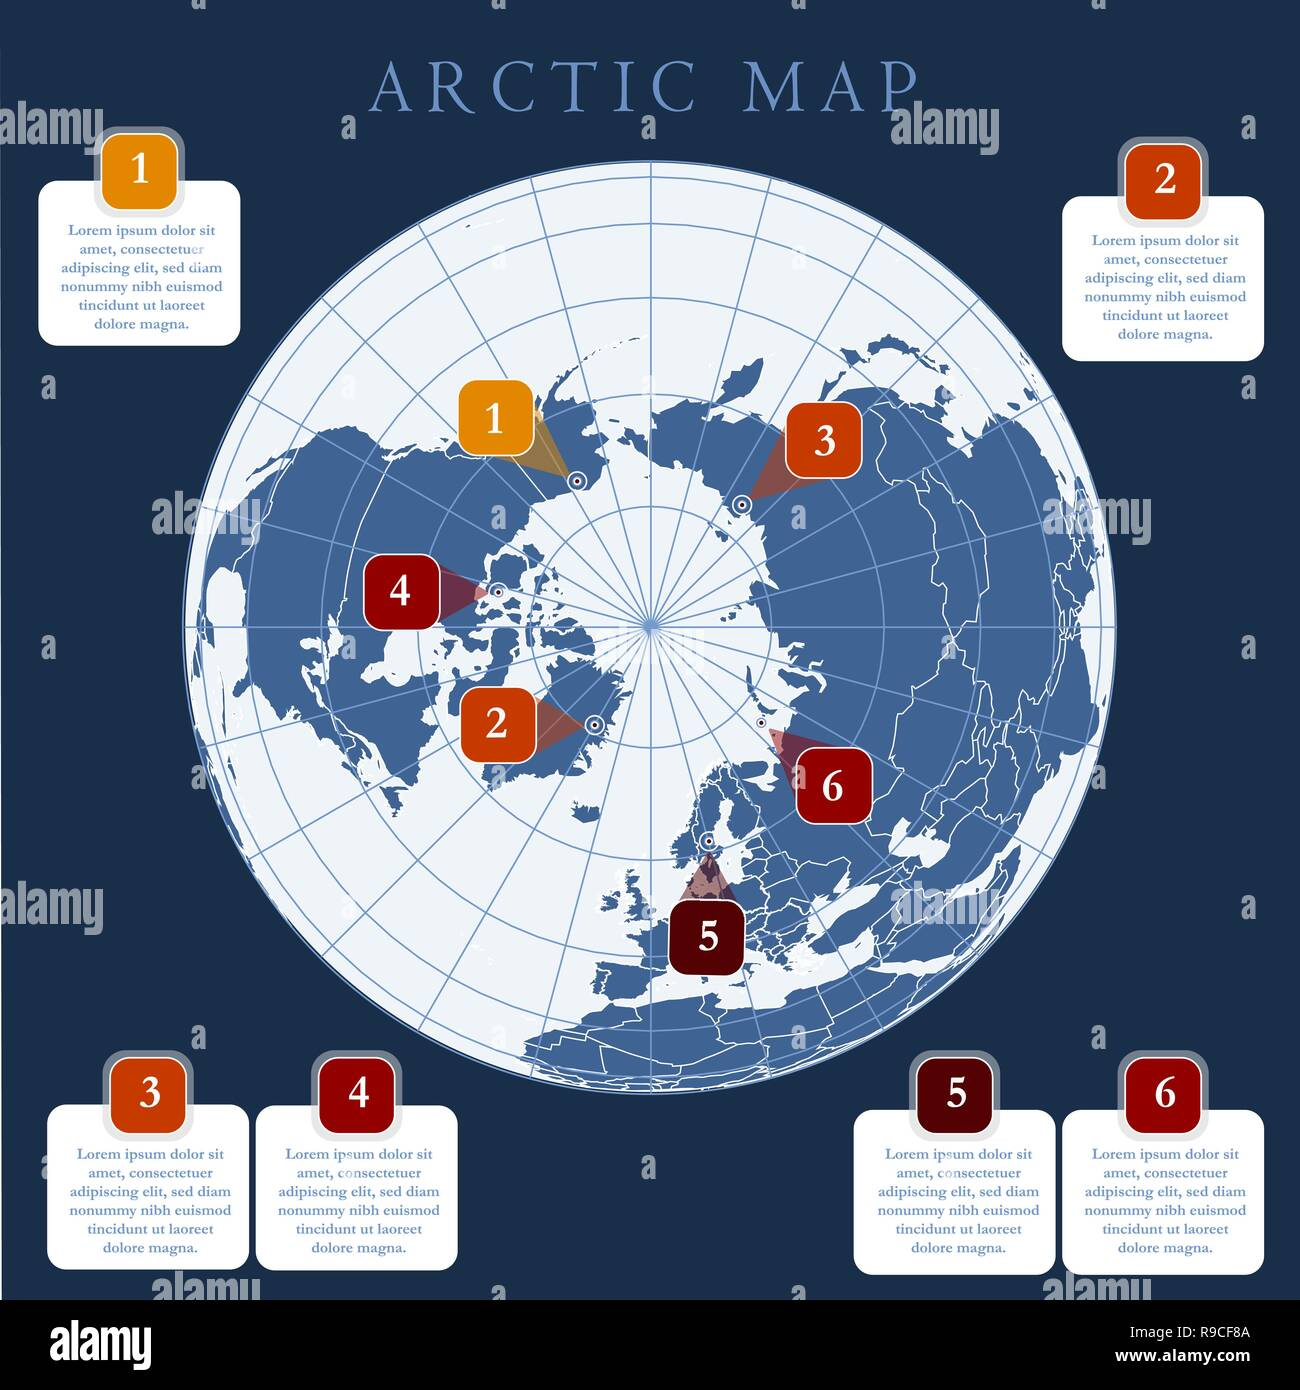 Antarctic Circle Map Stock Photos & Antarctic Circle Map Stock ...